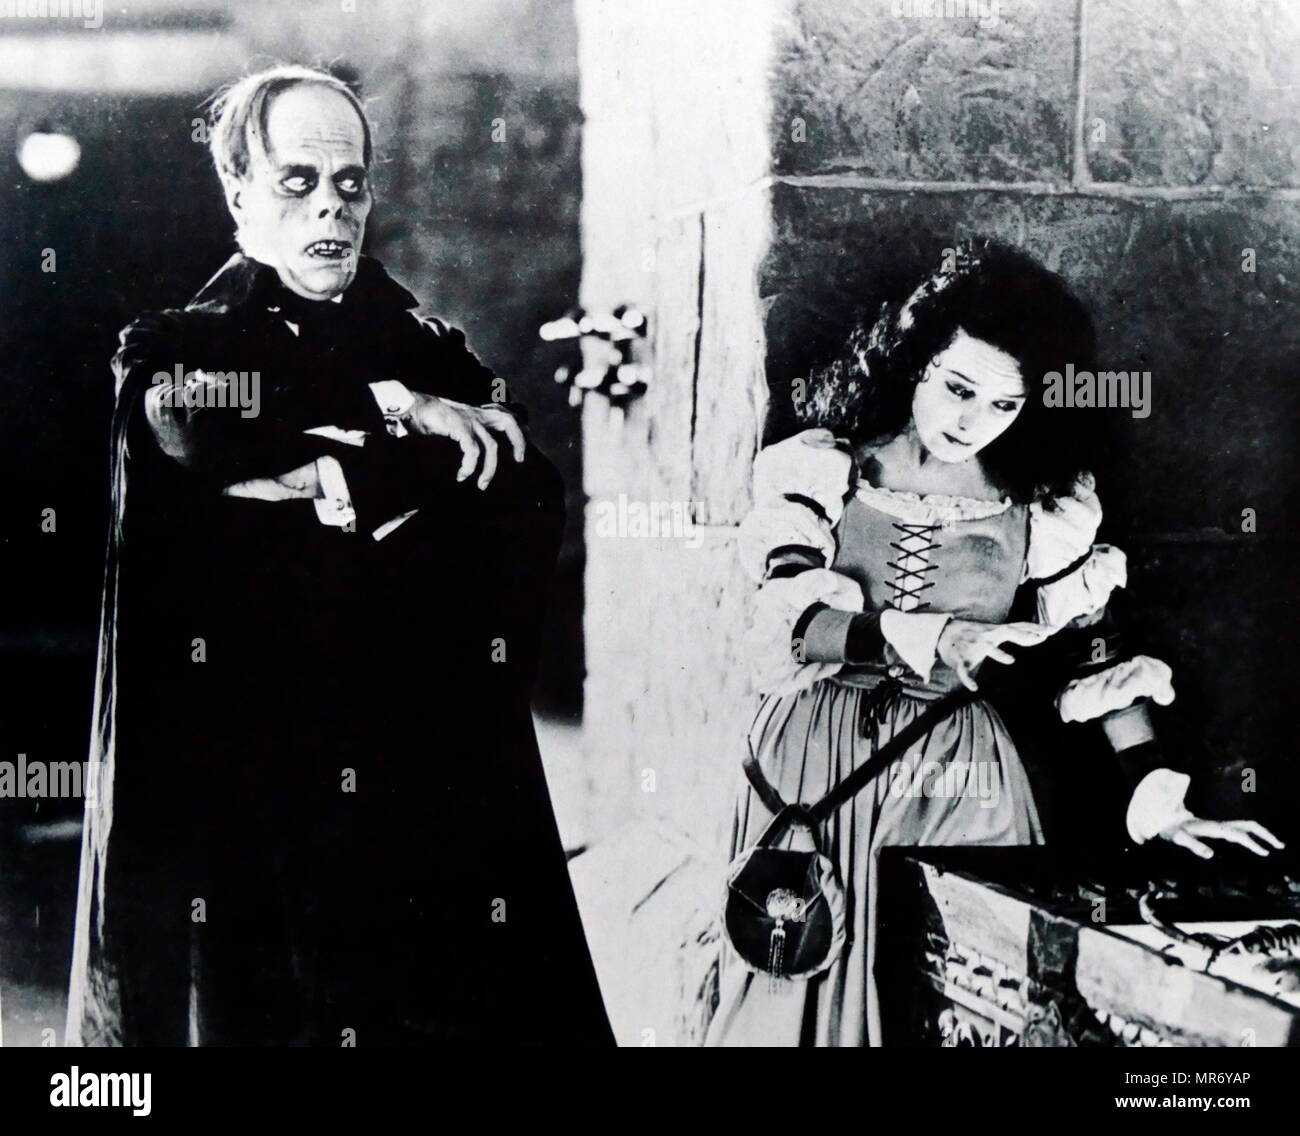 Lon Chaney and Mary Philbin in 'The Phantom of the Opera' a 1925 American silent horror film adaptation of Gaston Leroux's 1910 novel, directed by Rupert Julian and starring Lon Chaney, Sr. in the title role. Lon Chaney (1883 – 1930); American stage and film actor, make-up artist, director and screenwriter. renowned for his characterizations of tortured, often grotesque and afflicted characters, and his ground-breaking artistry with makeup. Mary Loretta Philbin (1902 – 1993); American film actress of the silent film era - Stock Image